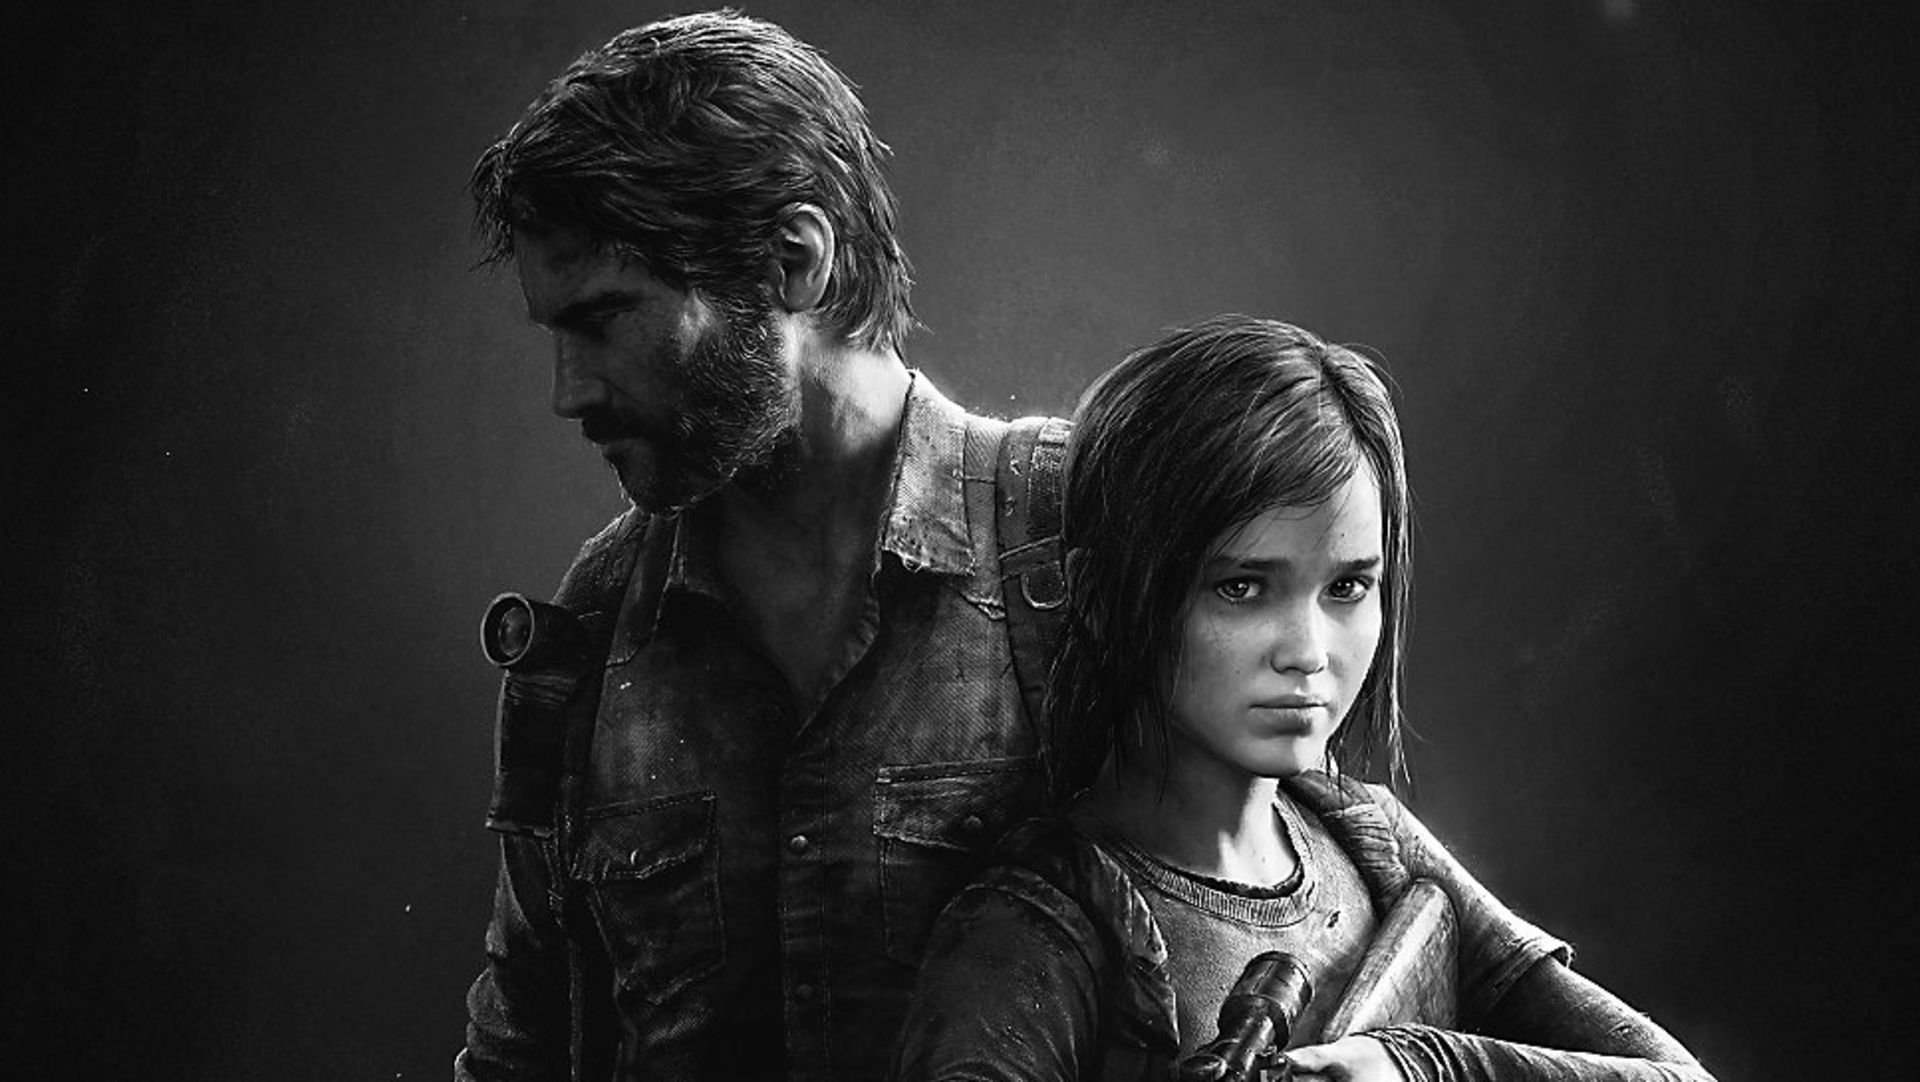 The Last of Us Remake and Uncharted For PS5 Leaked, New Multiplayer Project In Development at Naughty Dog